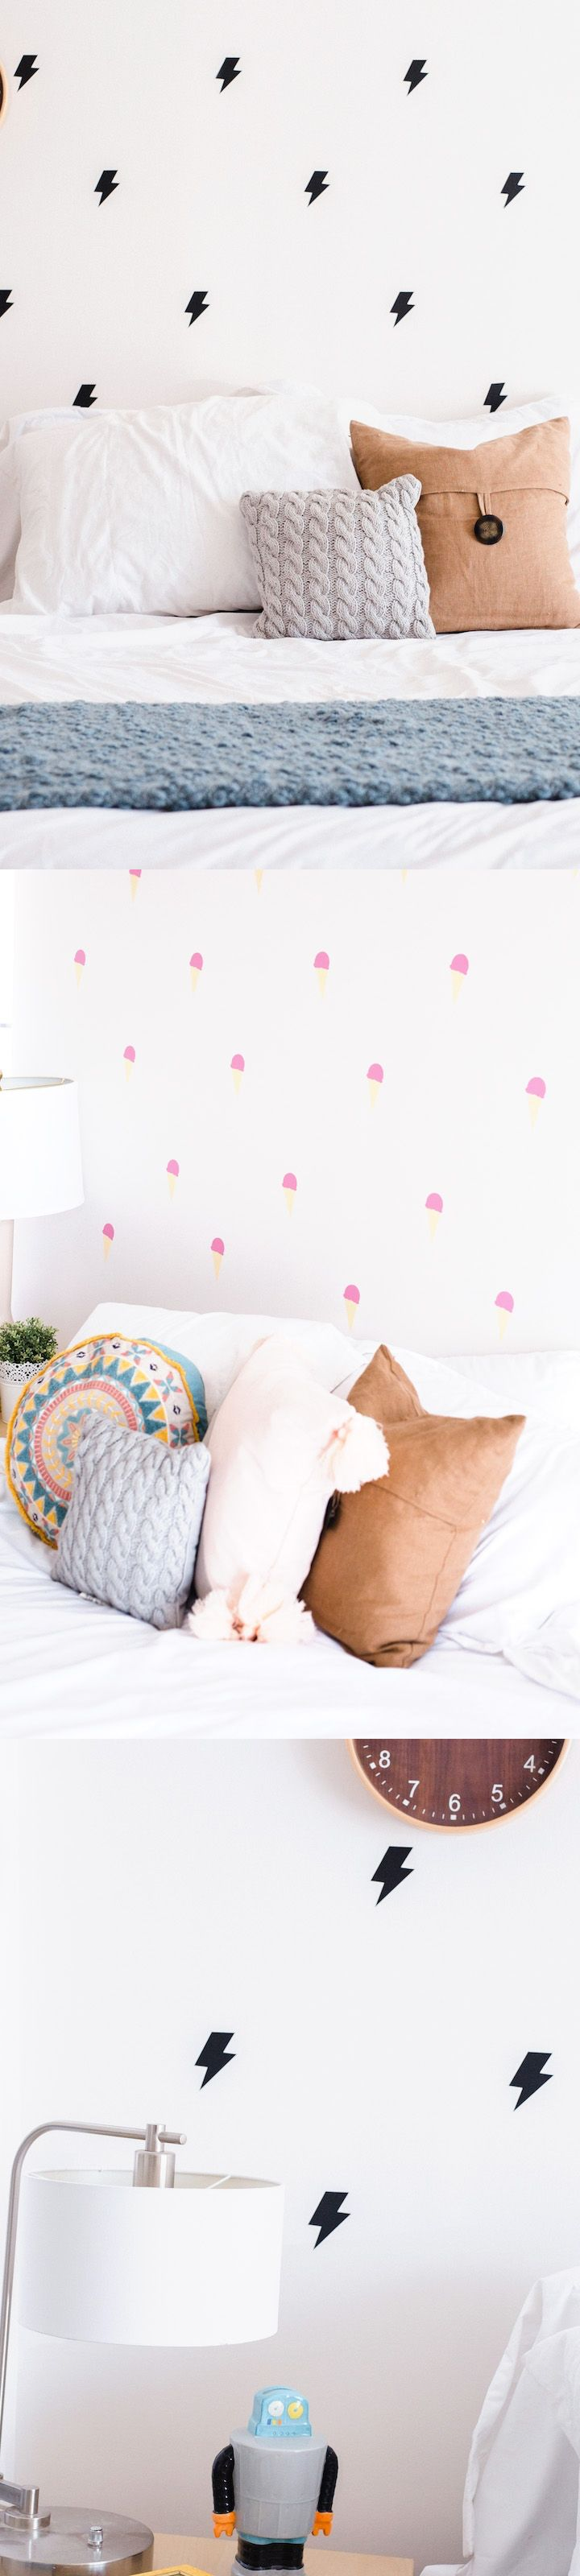 $14.99 - These adorable wall stickers are perfect for updating your little ones room. Cute as can be pink ice cream cones or gold dot for her, or awesome cactus or lightening stickers for him. Style any way you like - a cute border, horizontal rows, or evenly spaced across every wall in the room!